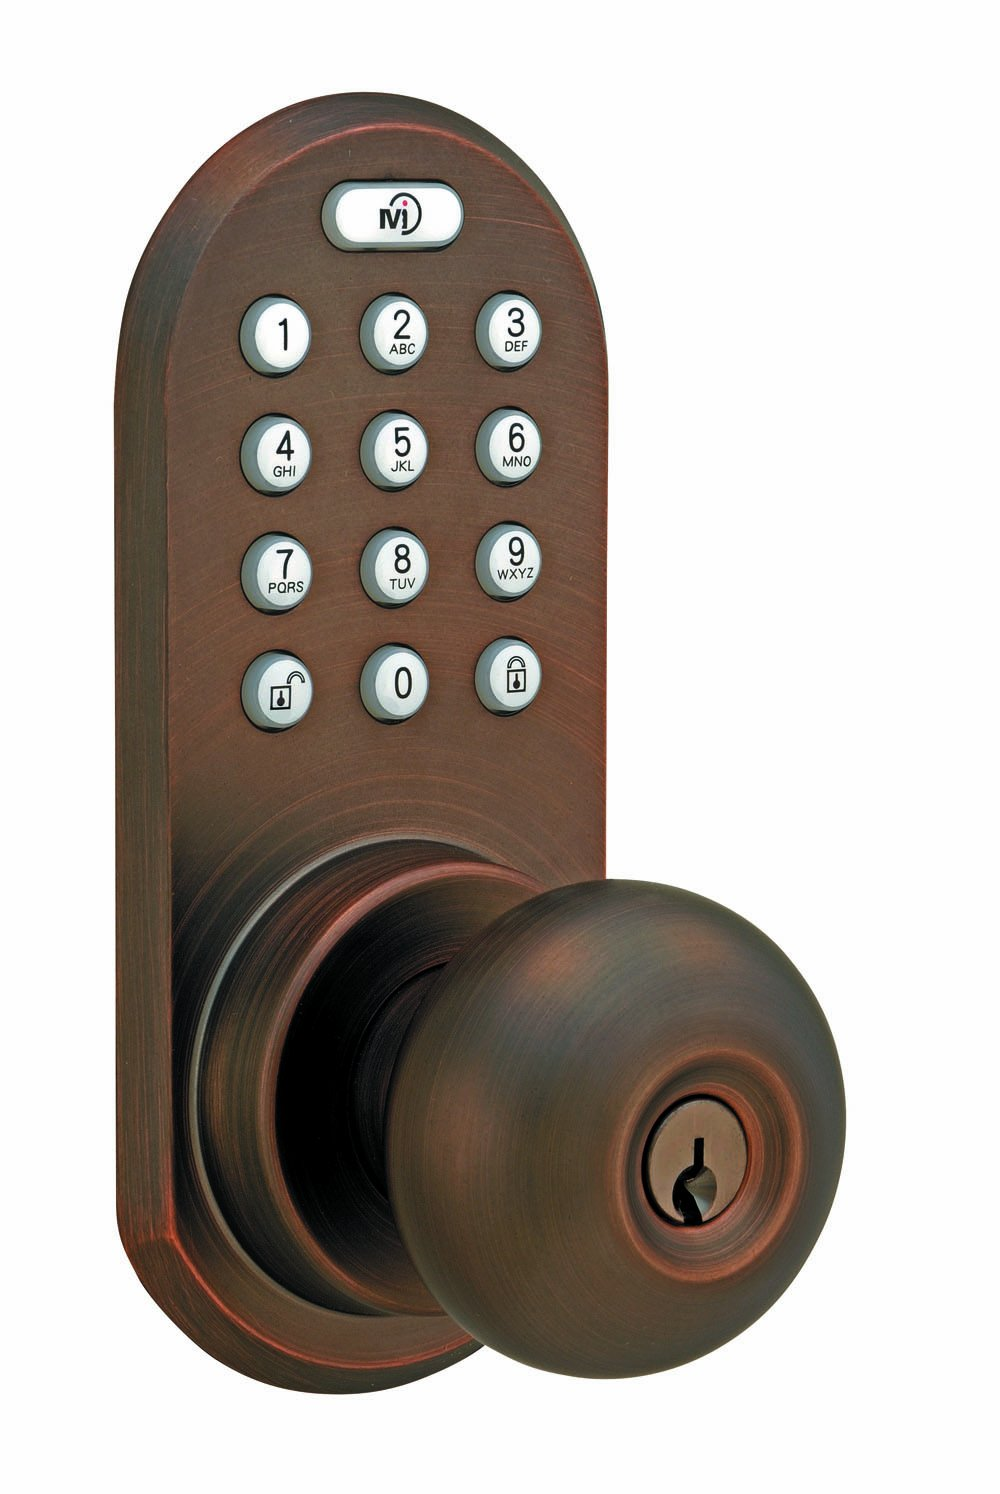 MORNING INDUSTRY INC QKK-01OB 3-In-1 Remote Control & Touchpad Doorknob, Oil Rubbed Bronze